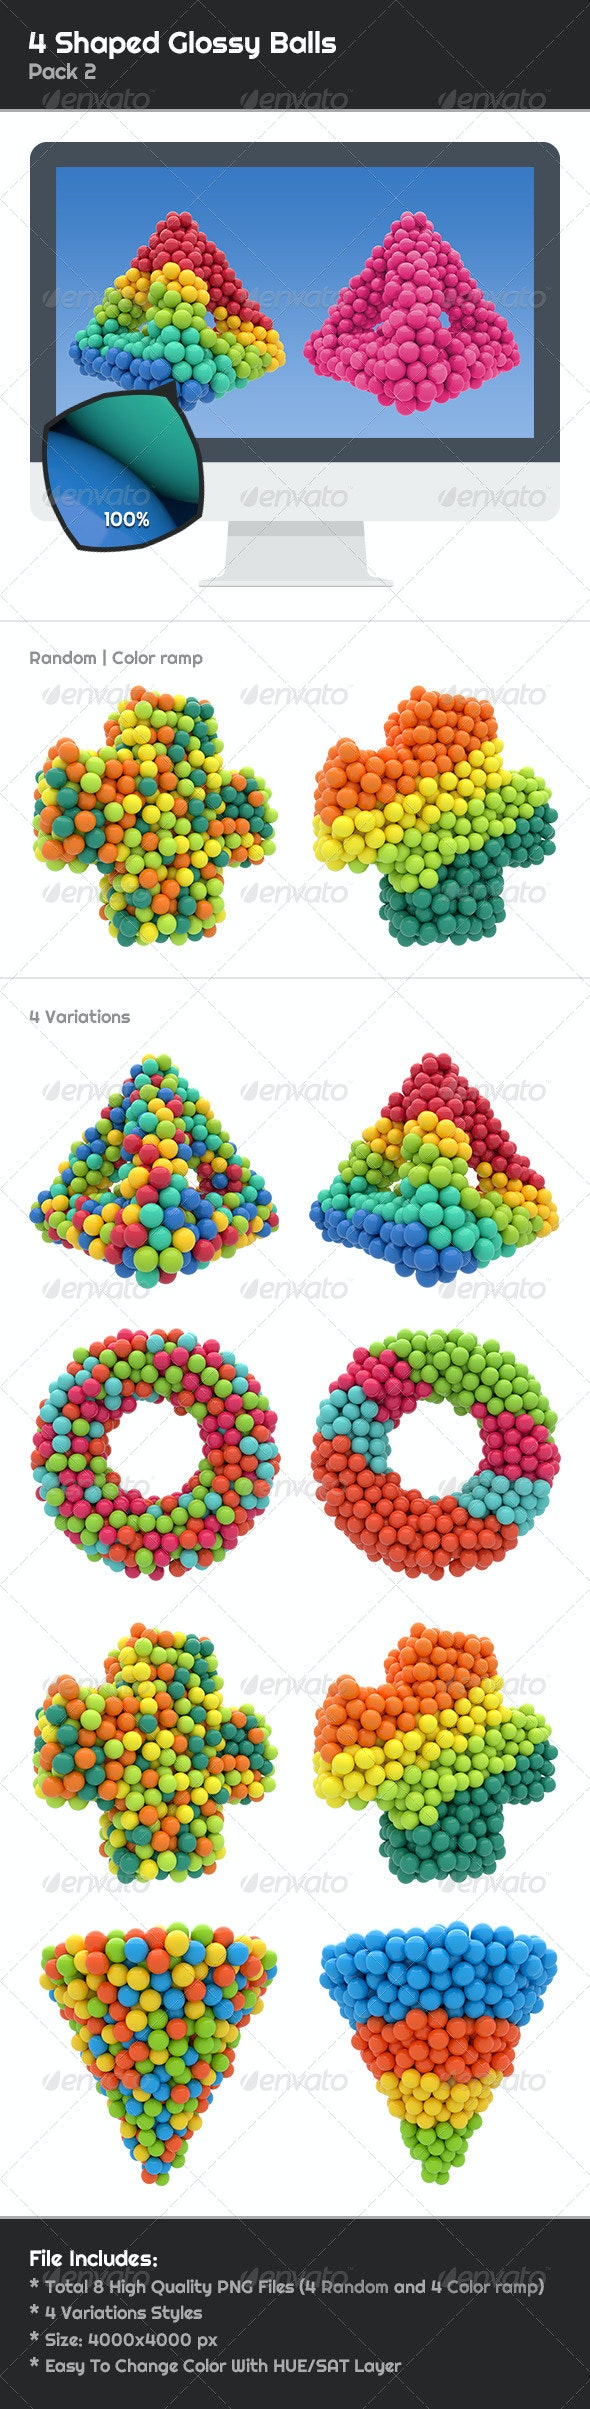 4 Shaped Glossy Balls Pack 2 - 3D Renders Graphics